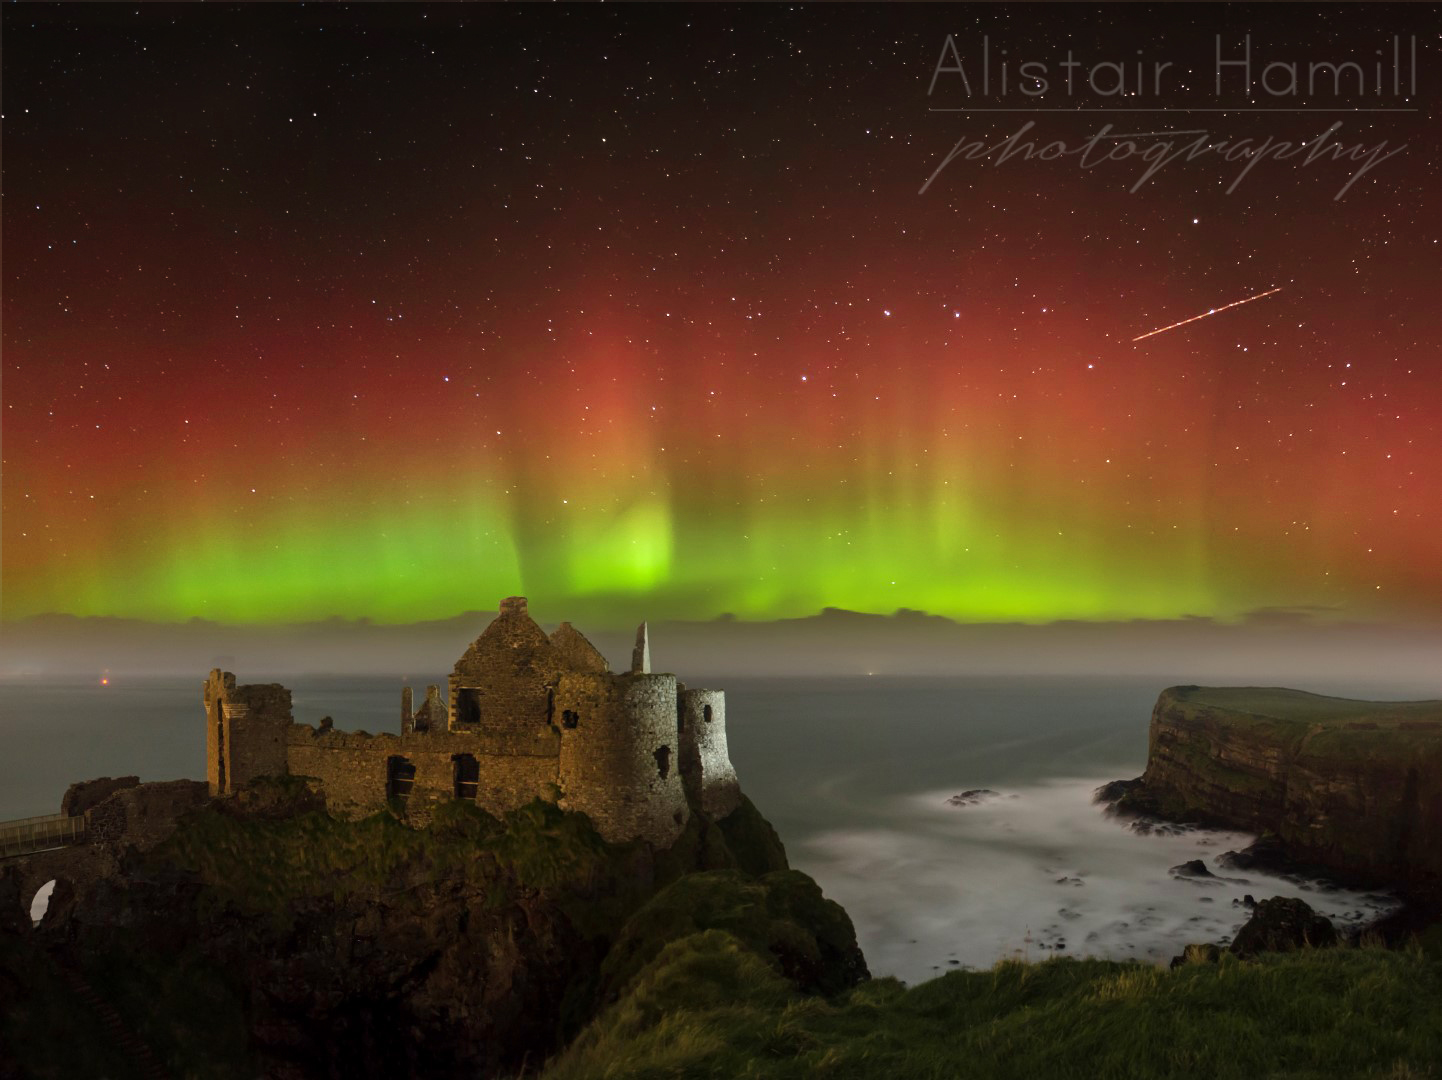 Aurora 16 x 12 (Large) fixed more sublty wm.jpg